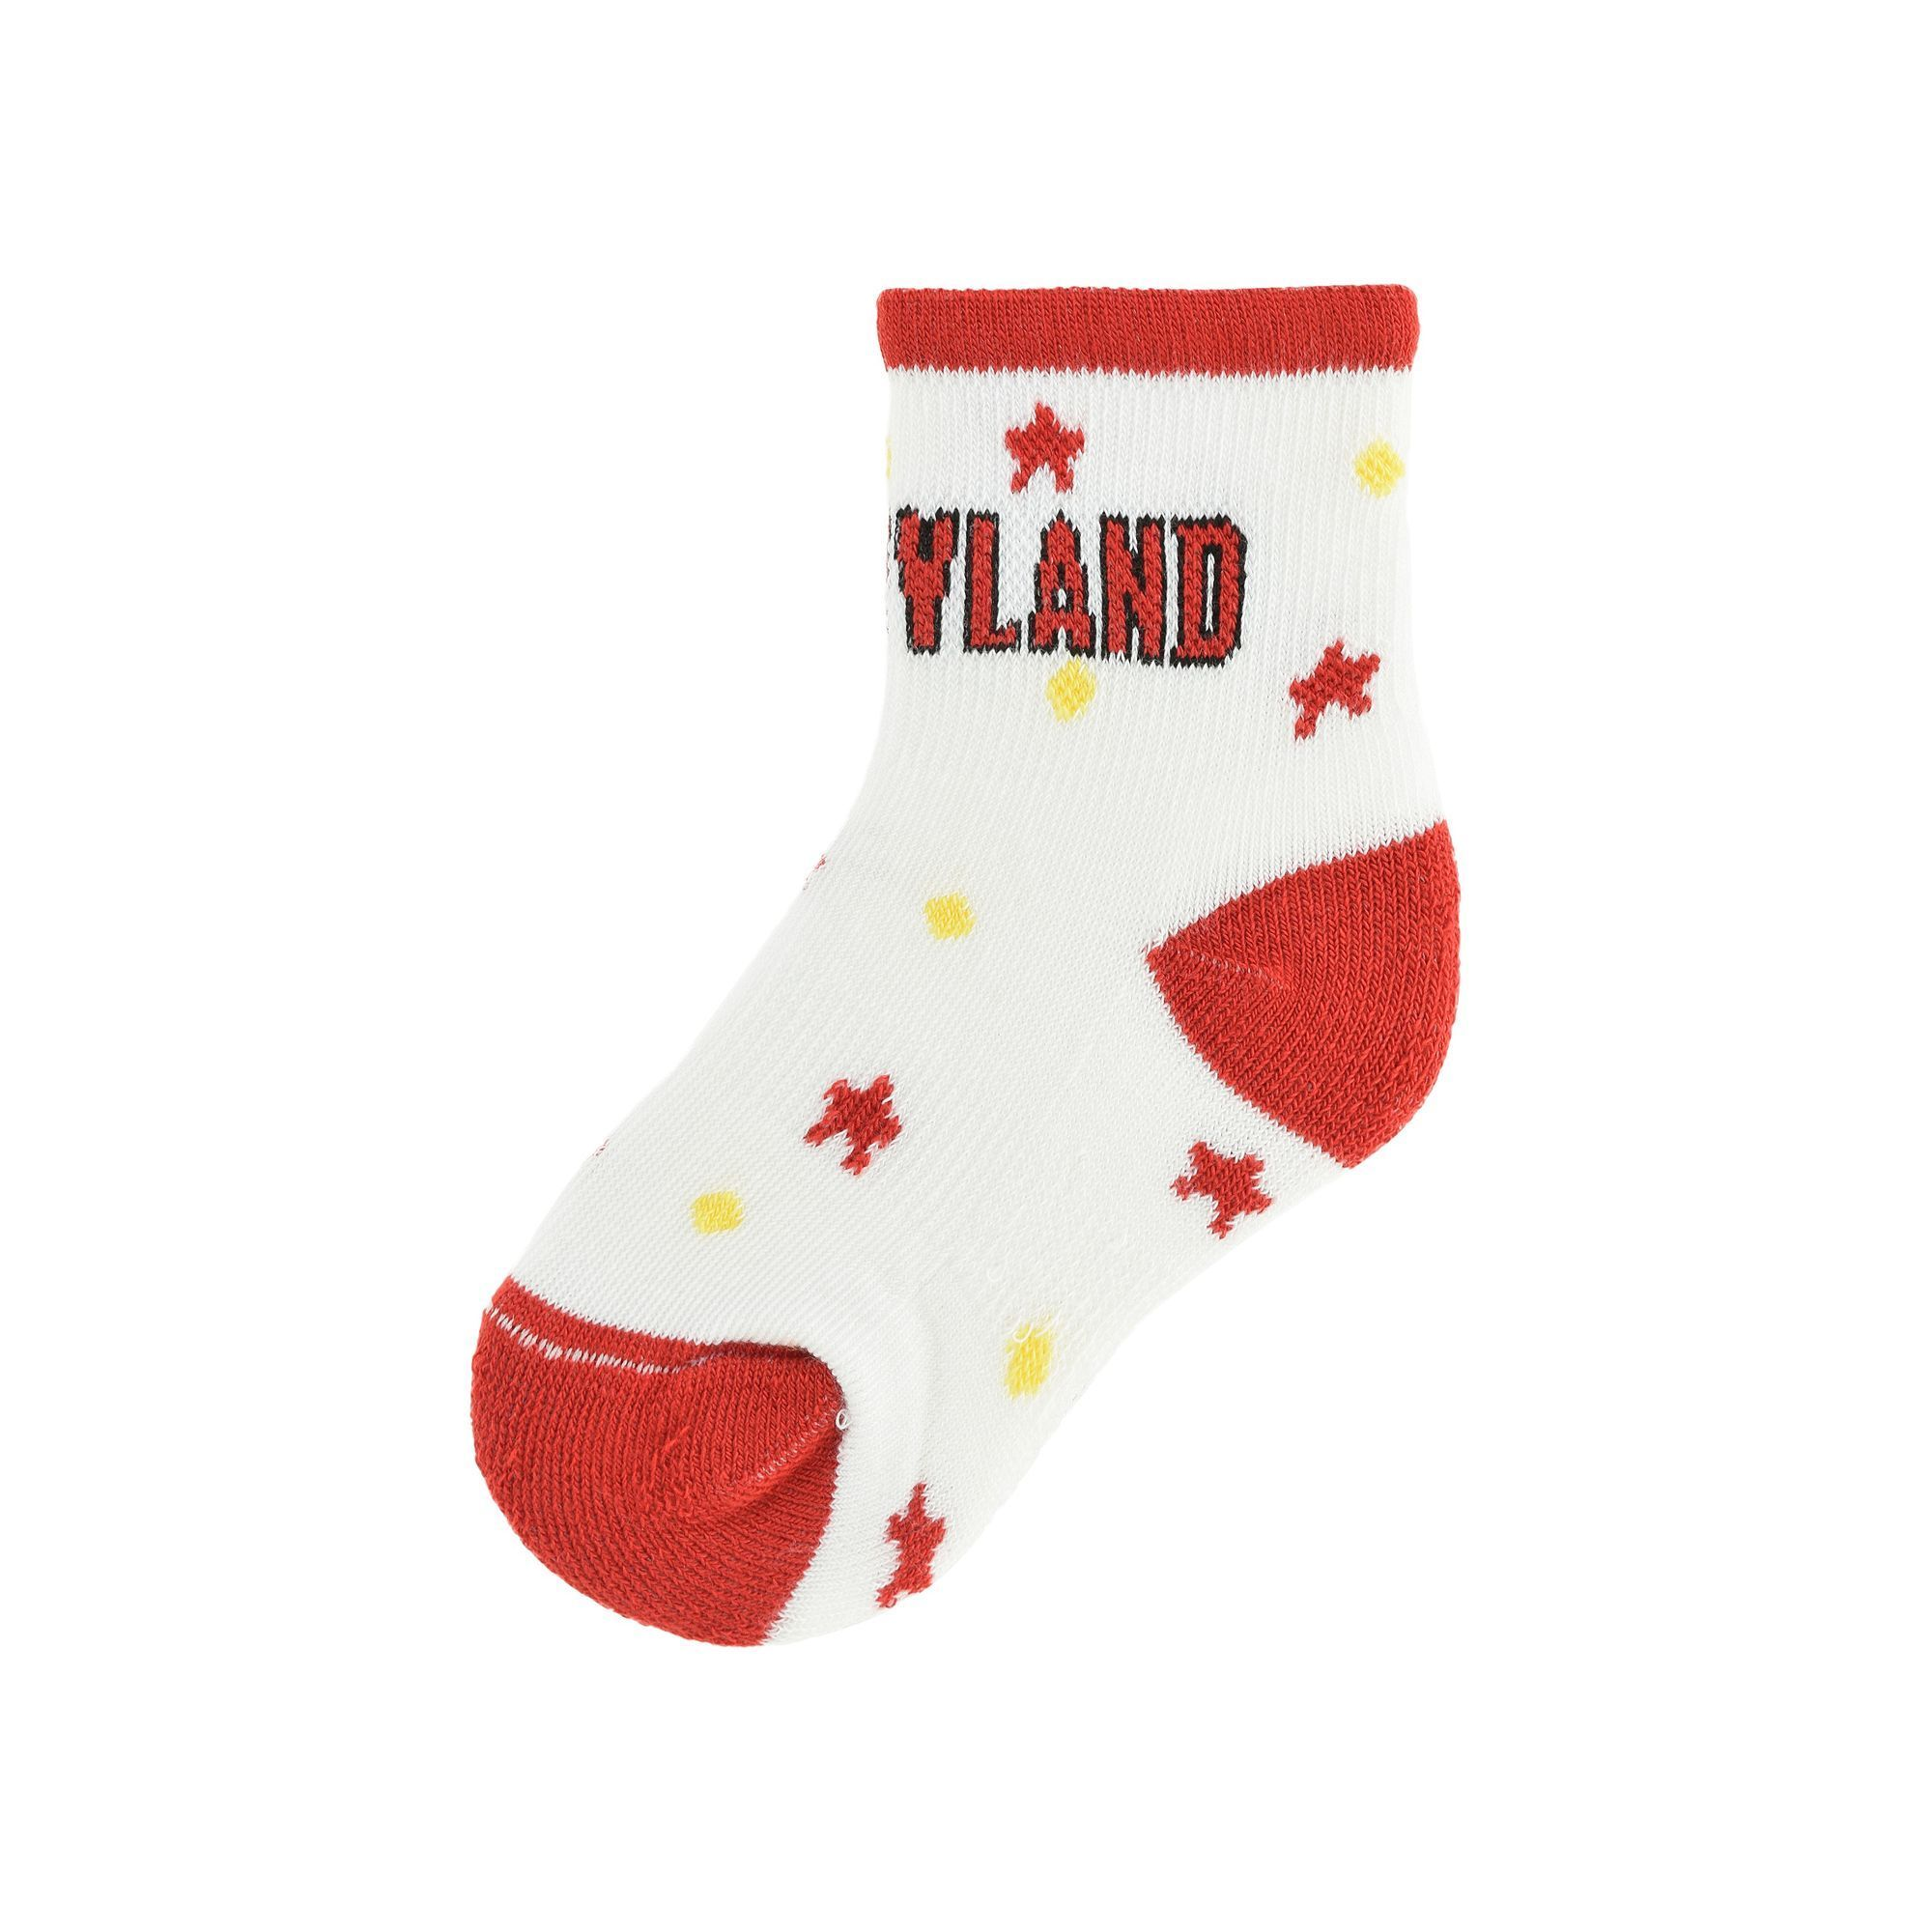 Baby Maryland Terrapins Socks Infant Uni Size 12 24 MONTH Red